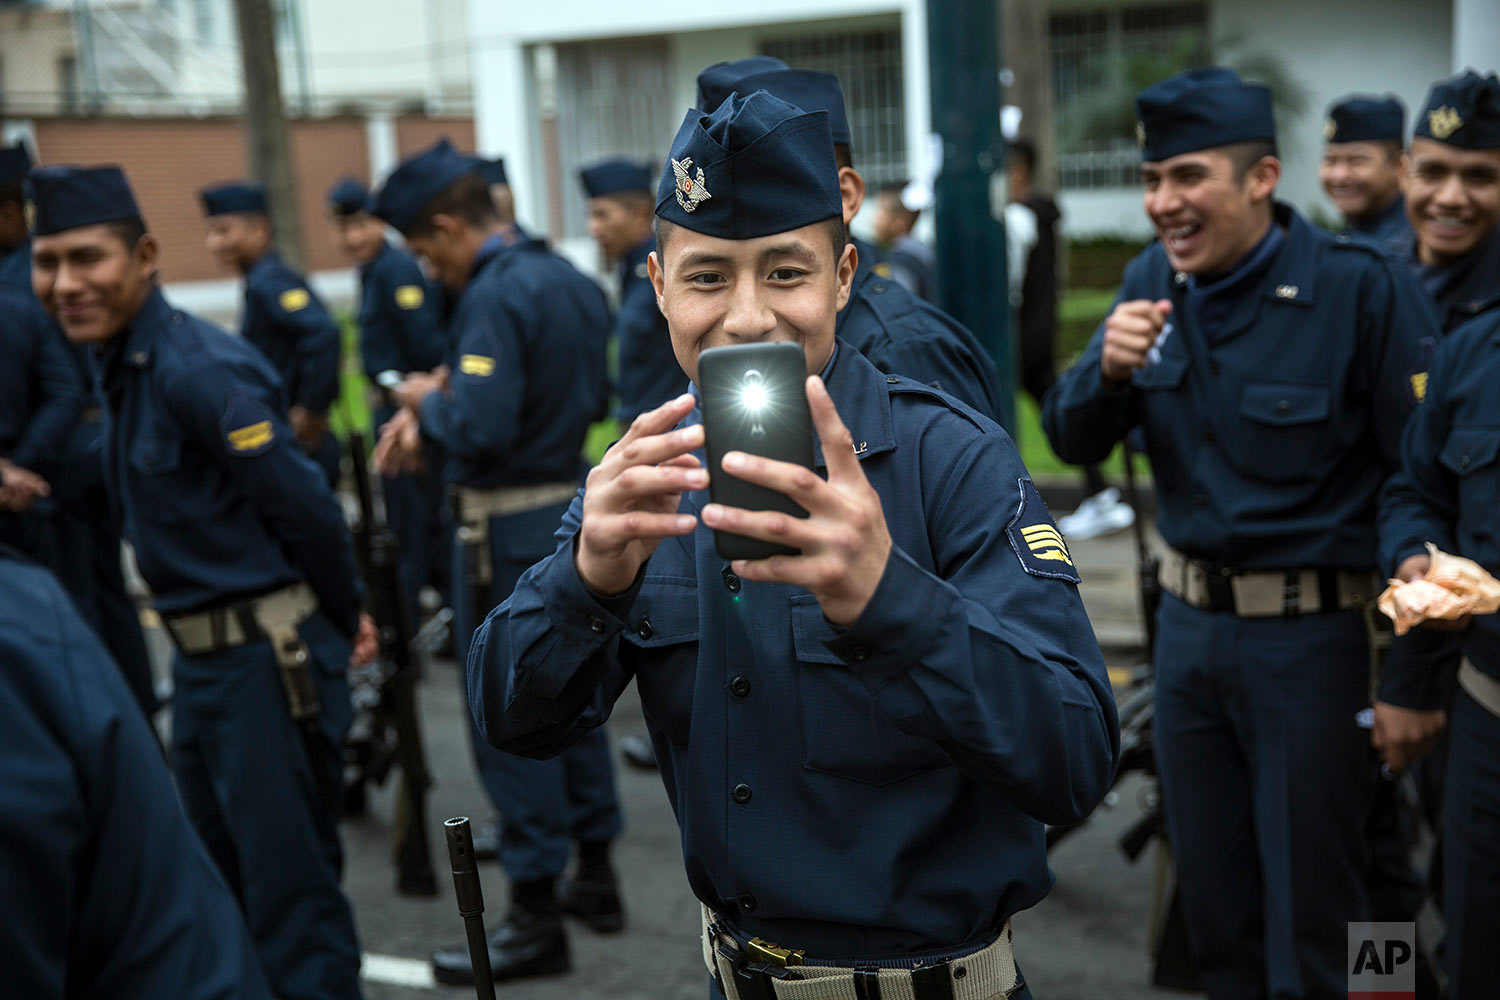 A soldier takes a cell phone picture of journalists before the start of a military parade, part of Independence Day celebrations in Lima, Peru, July 29, 2018. (AP Photo/Rodrigo Abd)